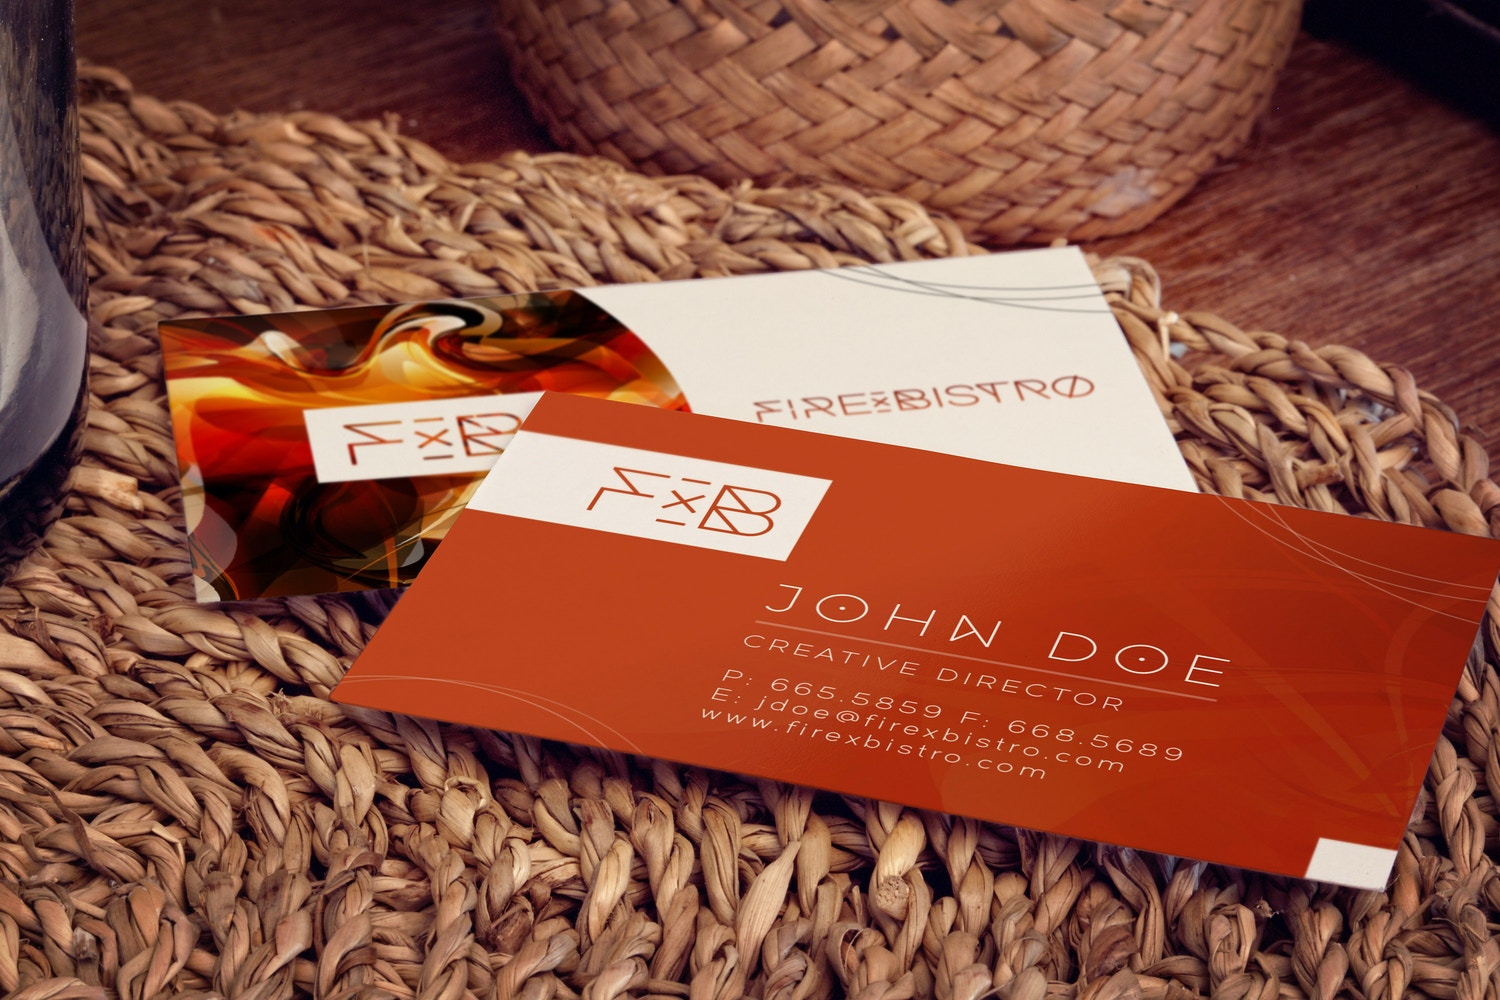 Business Cards Mockup 02 (2) by 4to Pixel on Original Mockups